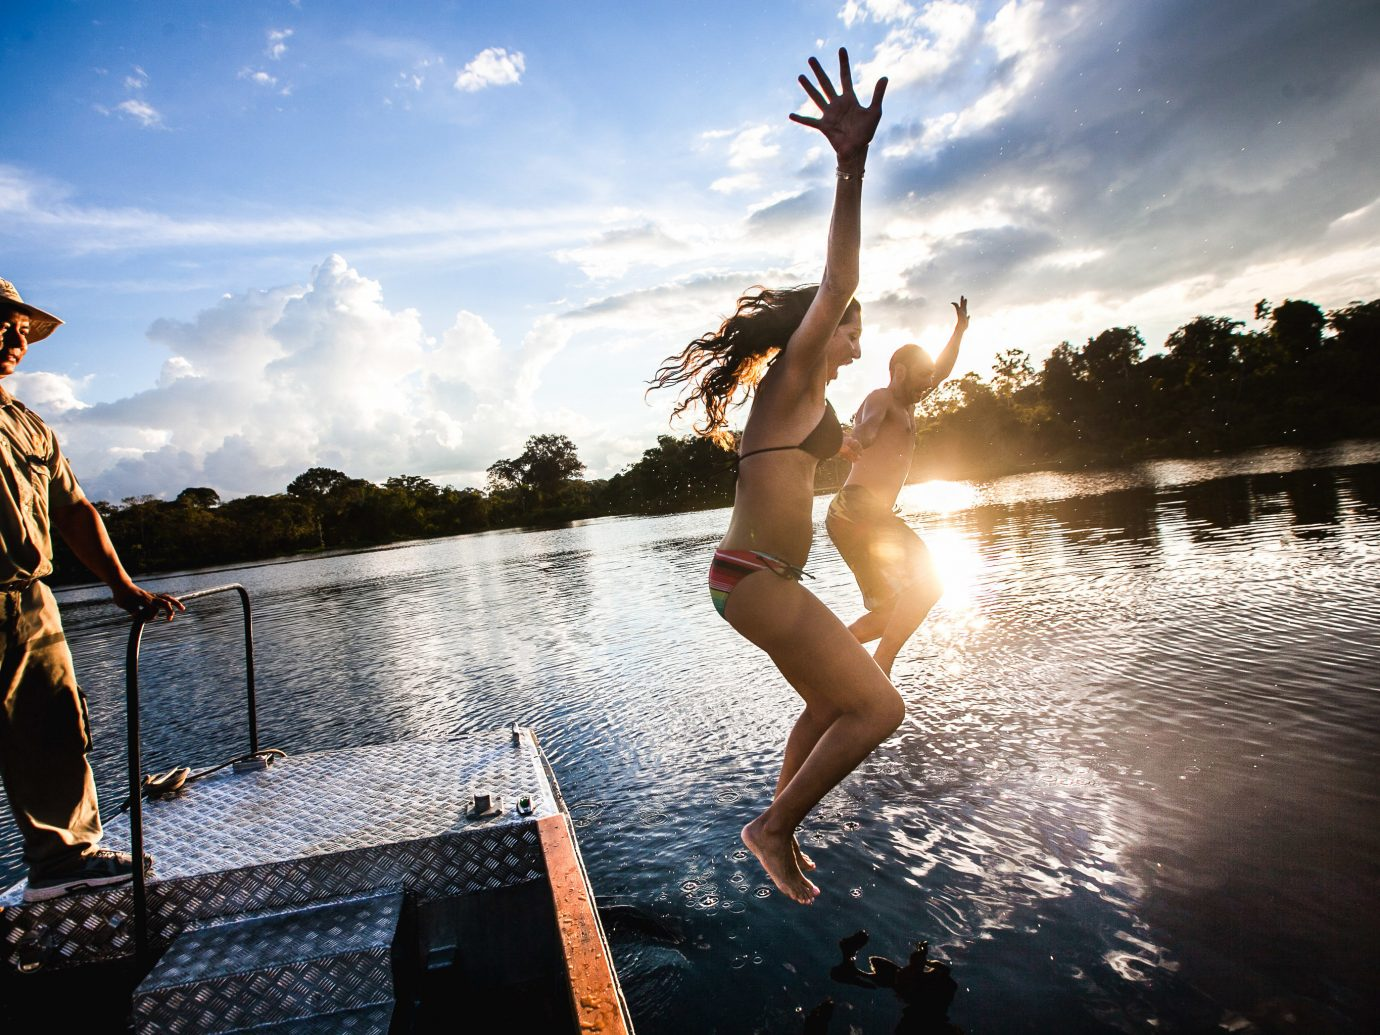 Cruise Travel Luxury Travel Outdoors + Adventure Travel Tips Trip Ideas sky outdoor water person reflection fun Boat leisure vacation girl photography Sea summer sunlight tree cloud jumping tourism recreation Lake happiness flash photography evening water feature day